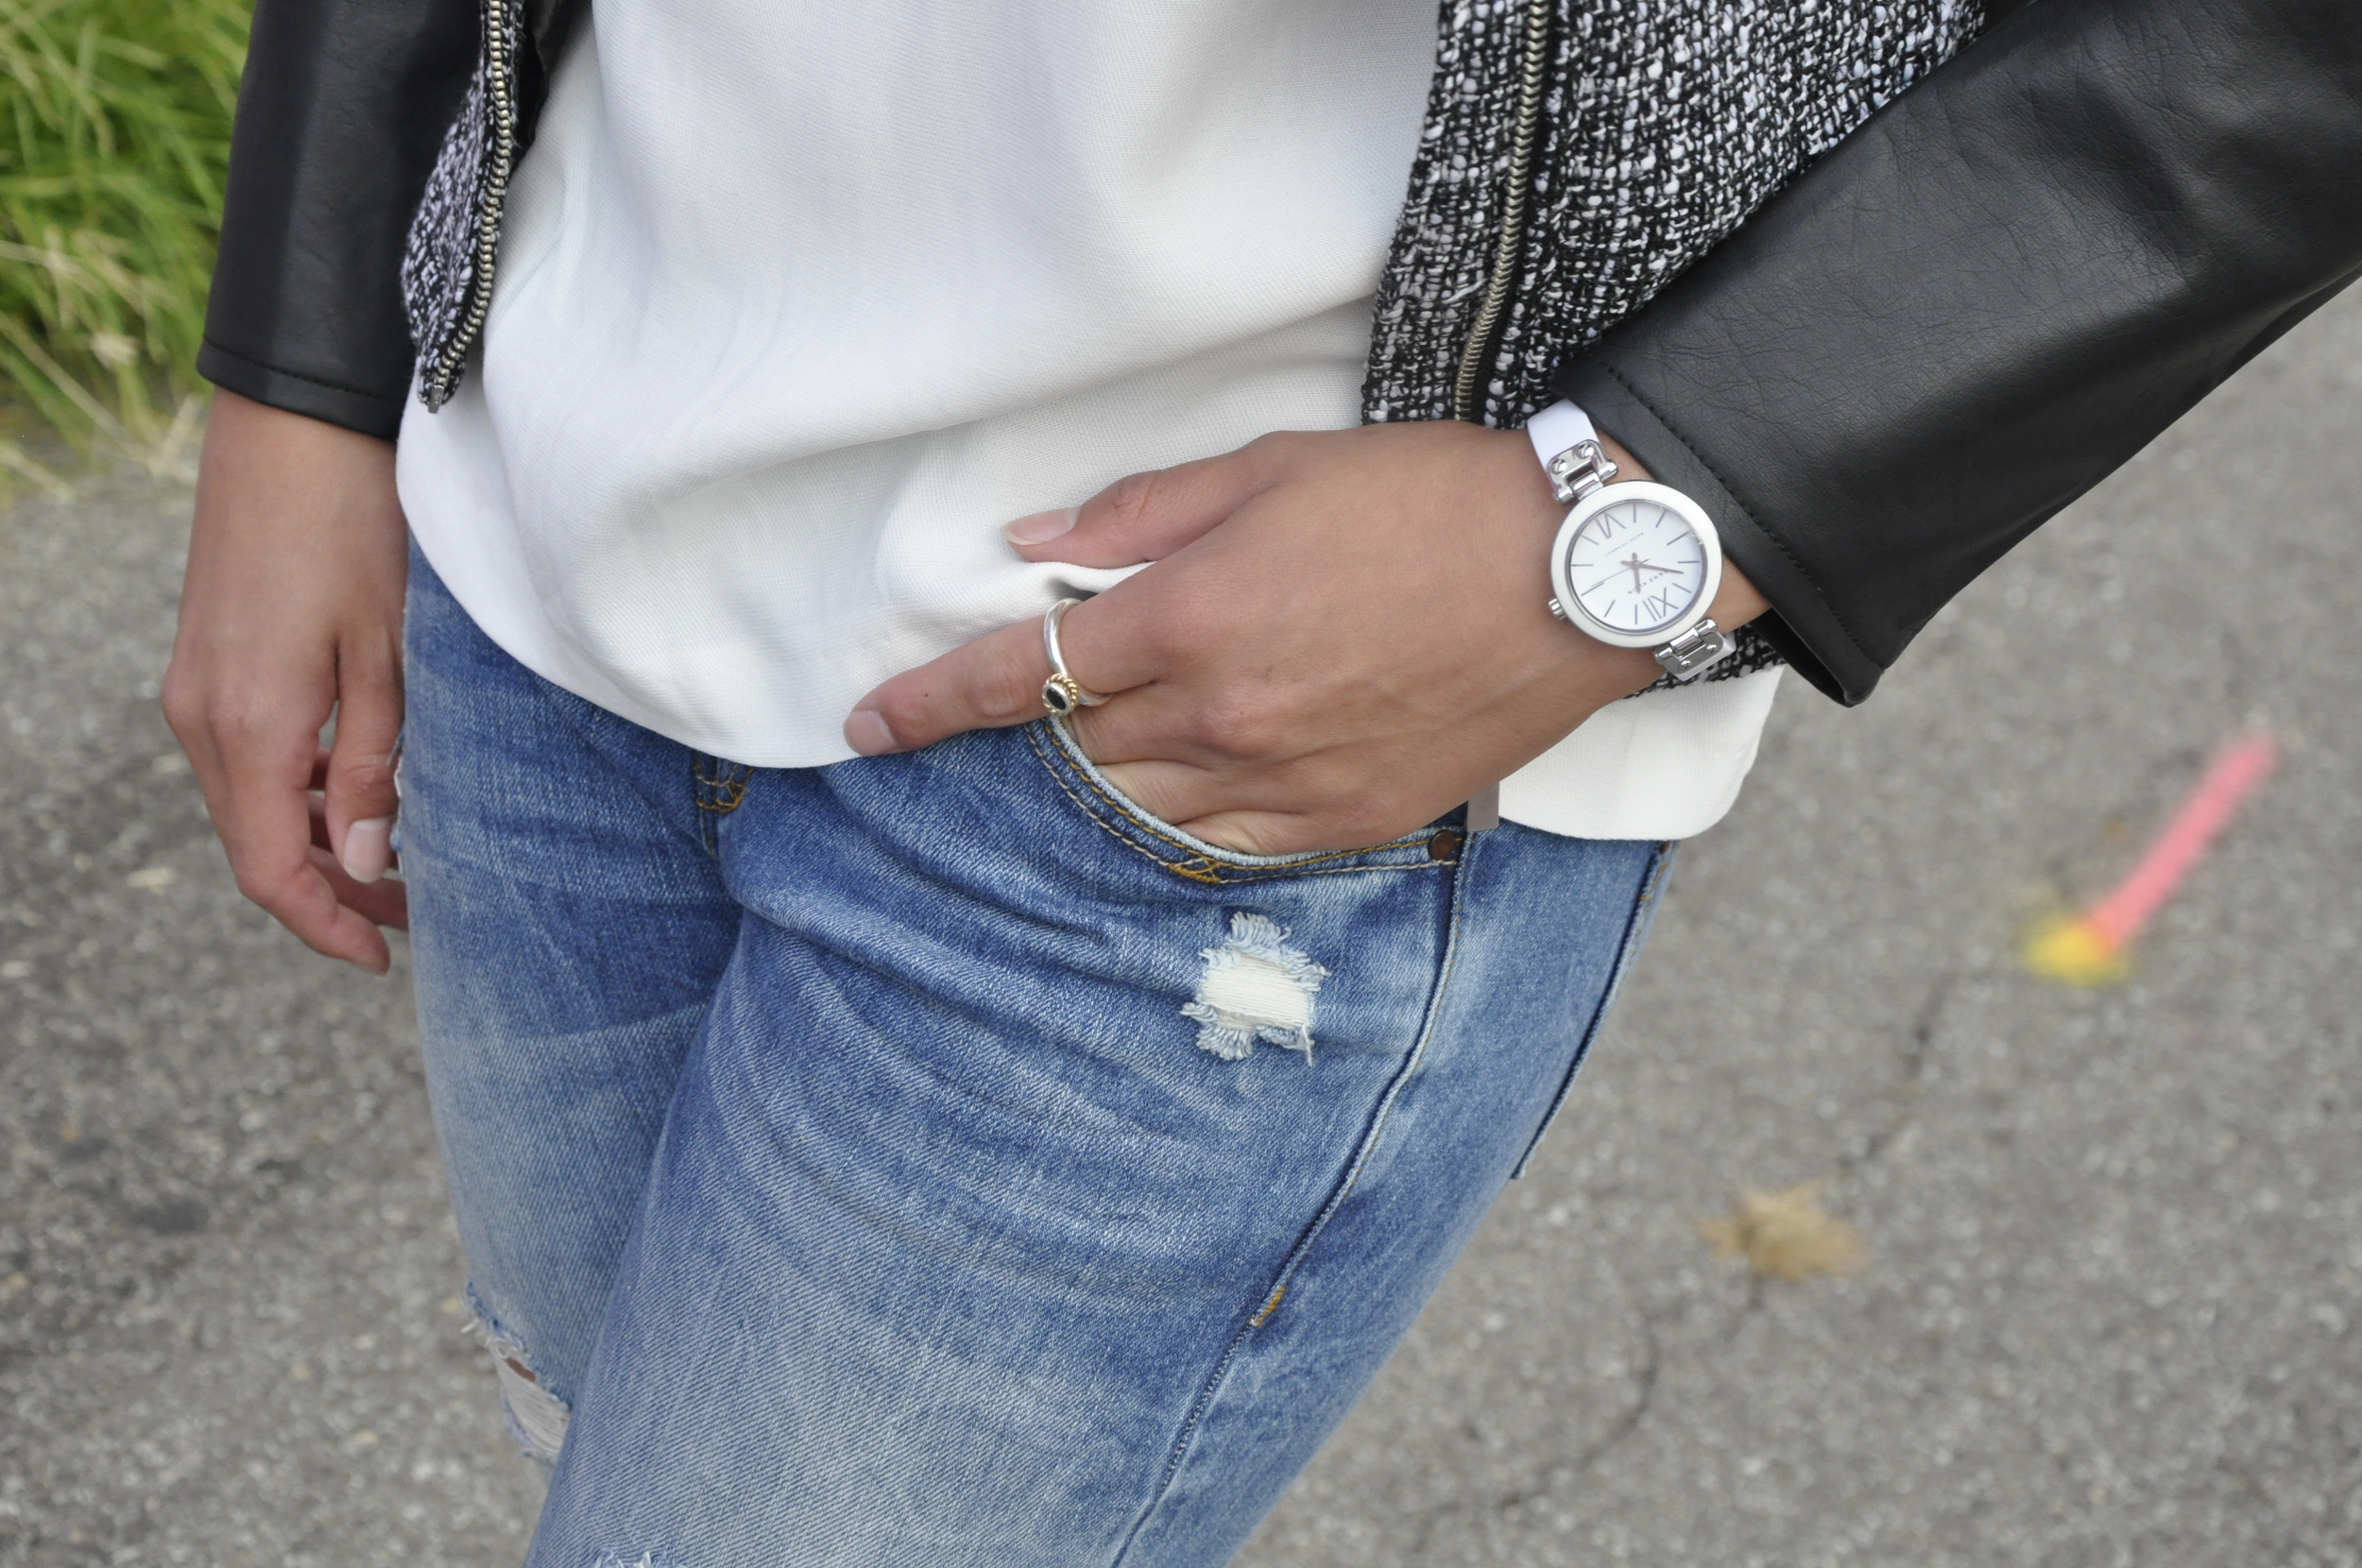 This watch was given to me by my cousins as a graduation gift in high school. To this day, it is one of my favorite jewelry items! It is simple and white, allowing me to wear it with many different outfits. the style of this Anne Klein beauty is a classic that will never go out of style.